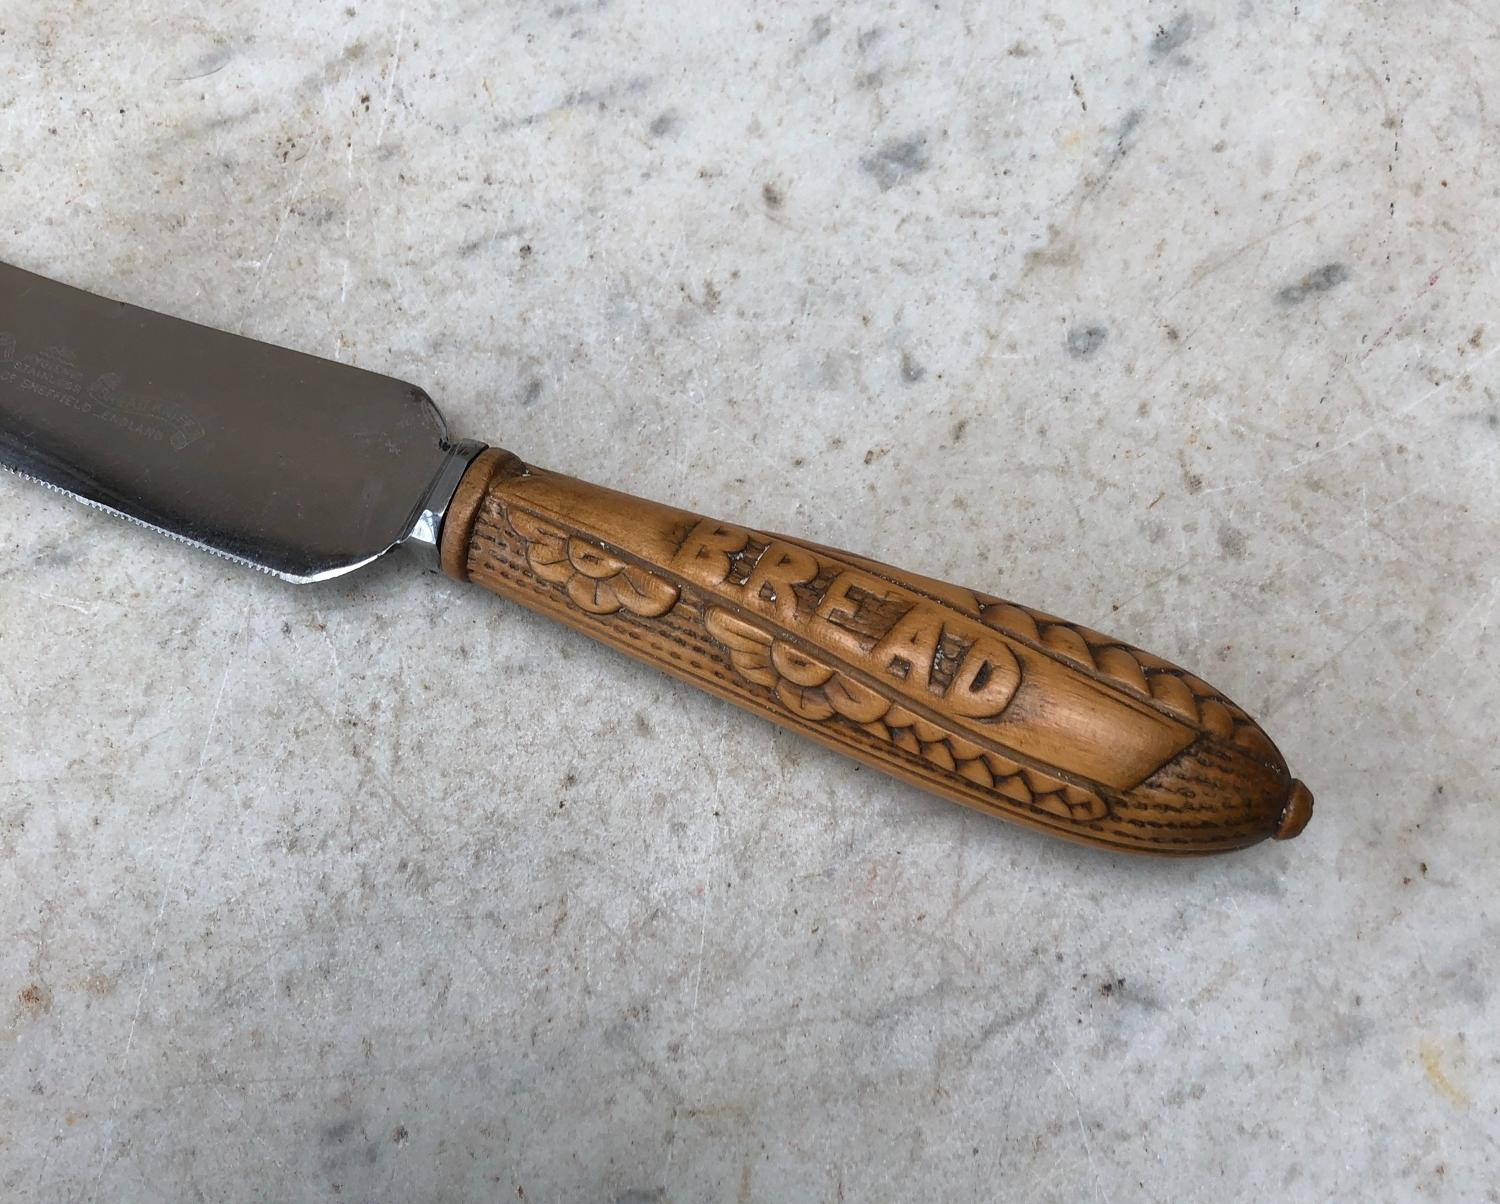 Early 20th Century Bread Knife with Diagonal Carving on Handle